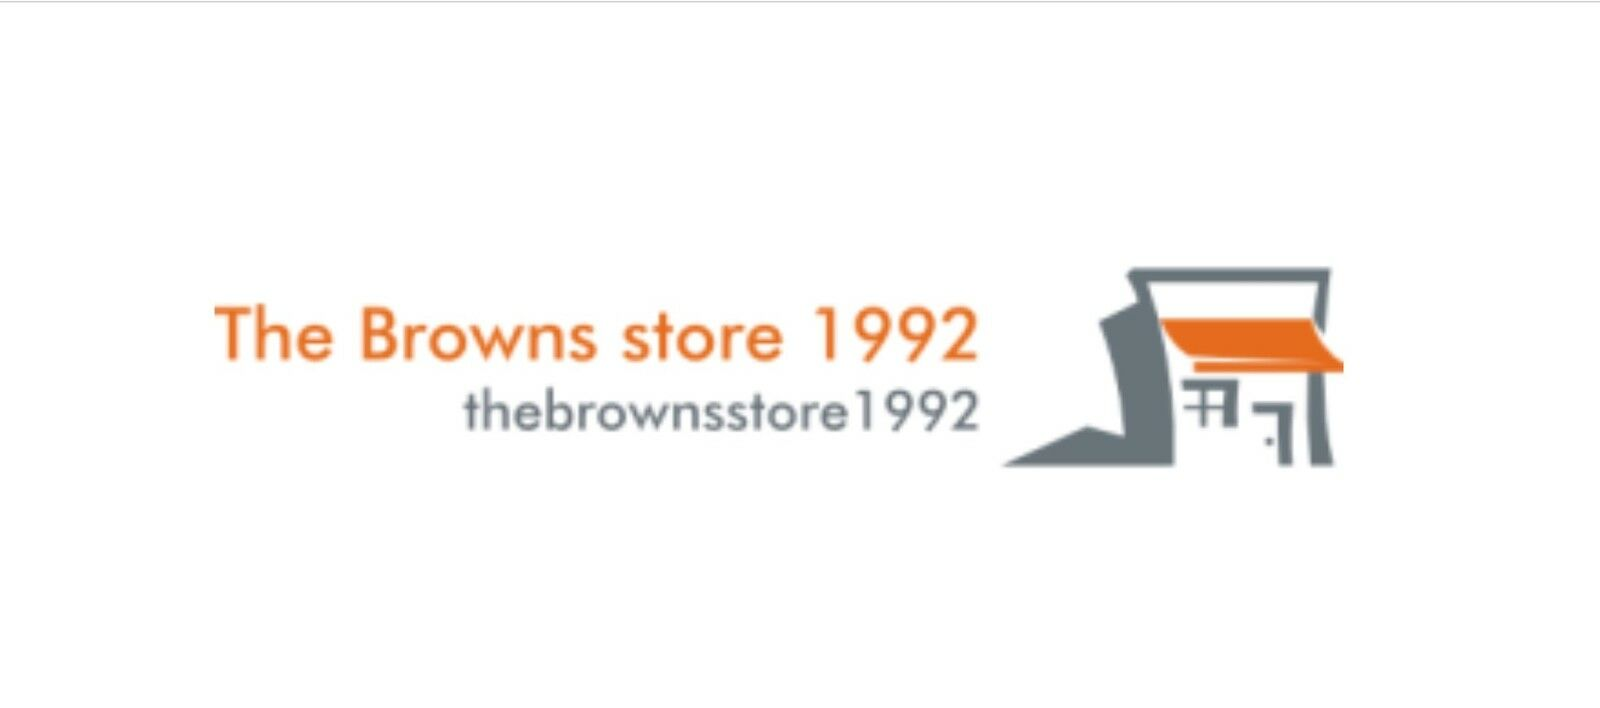 thebrownsstore1992